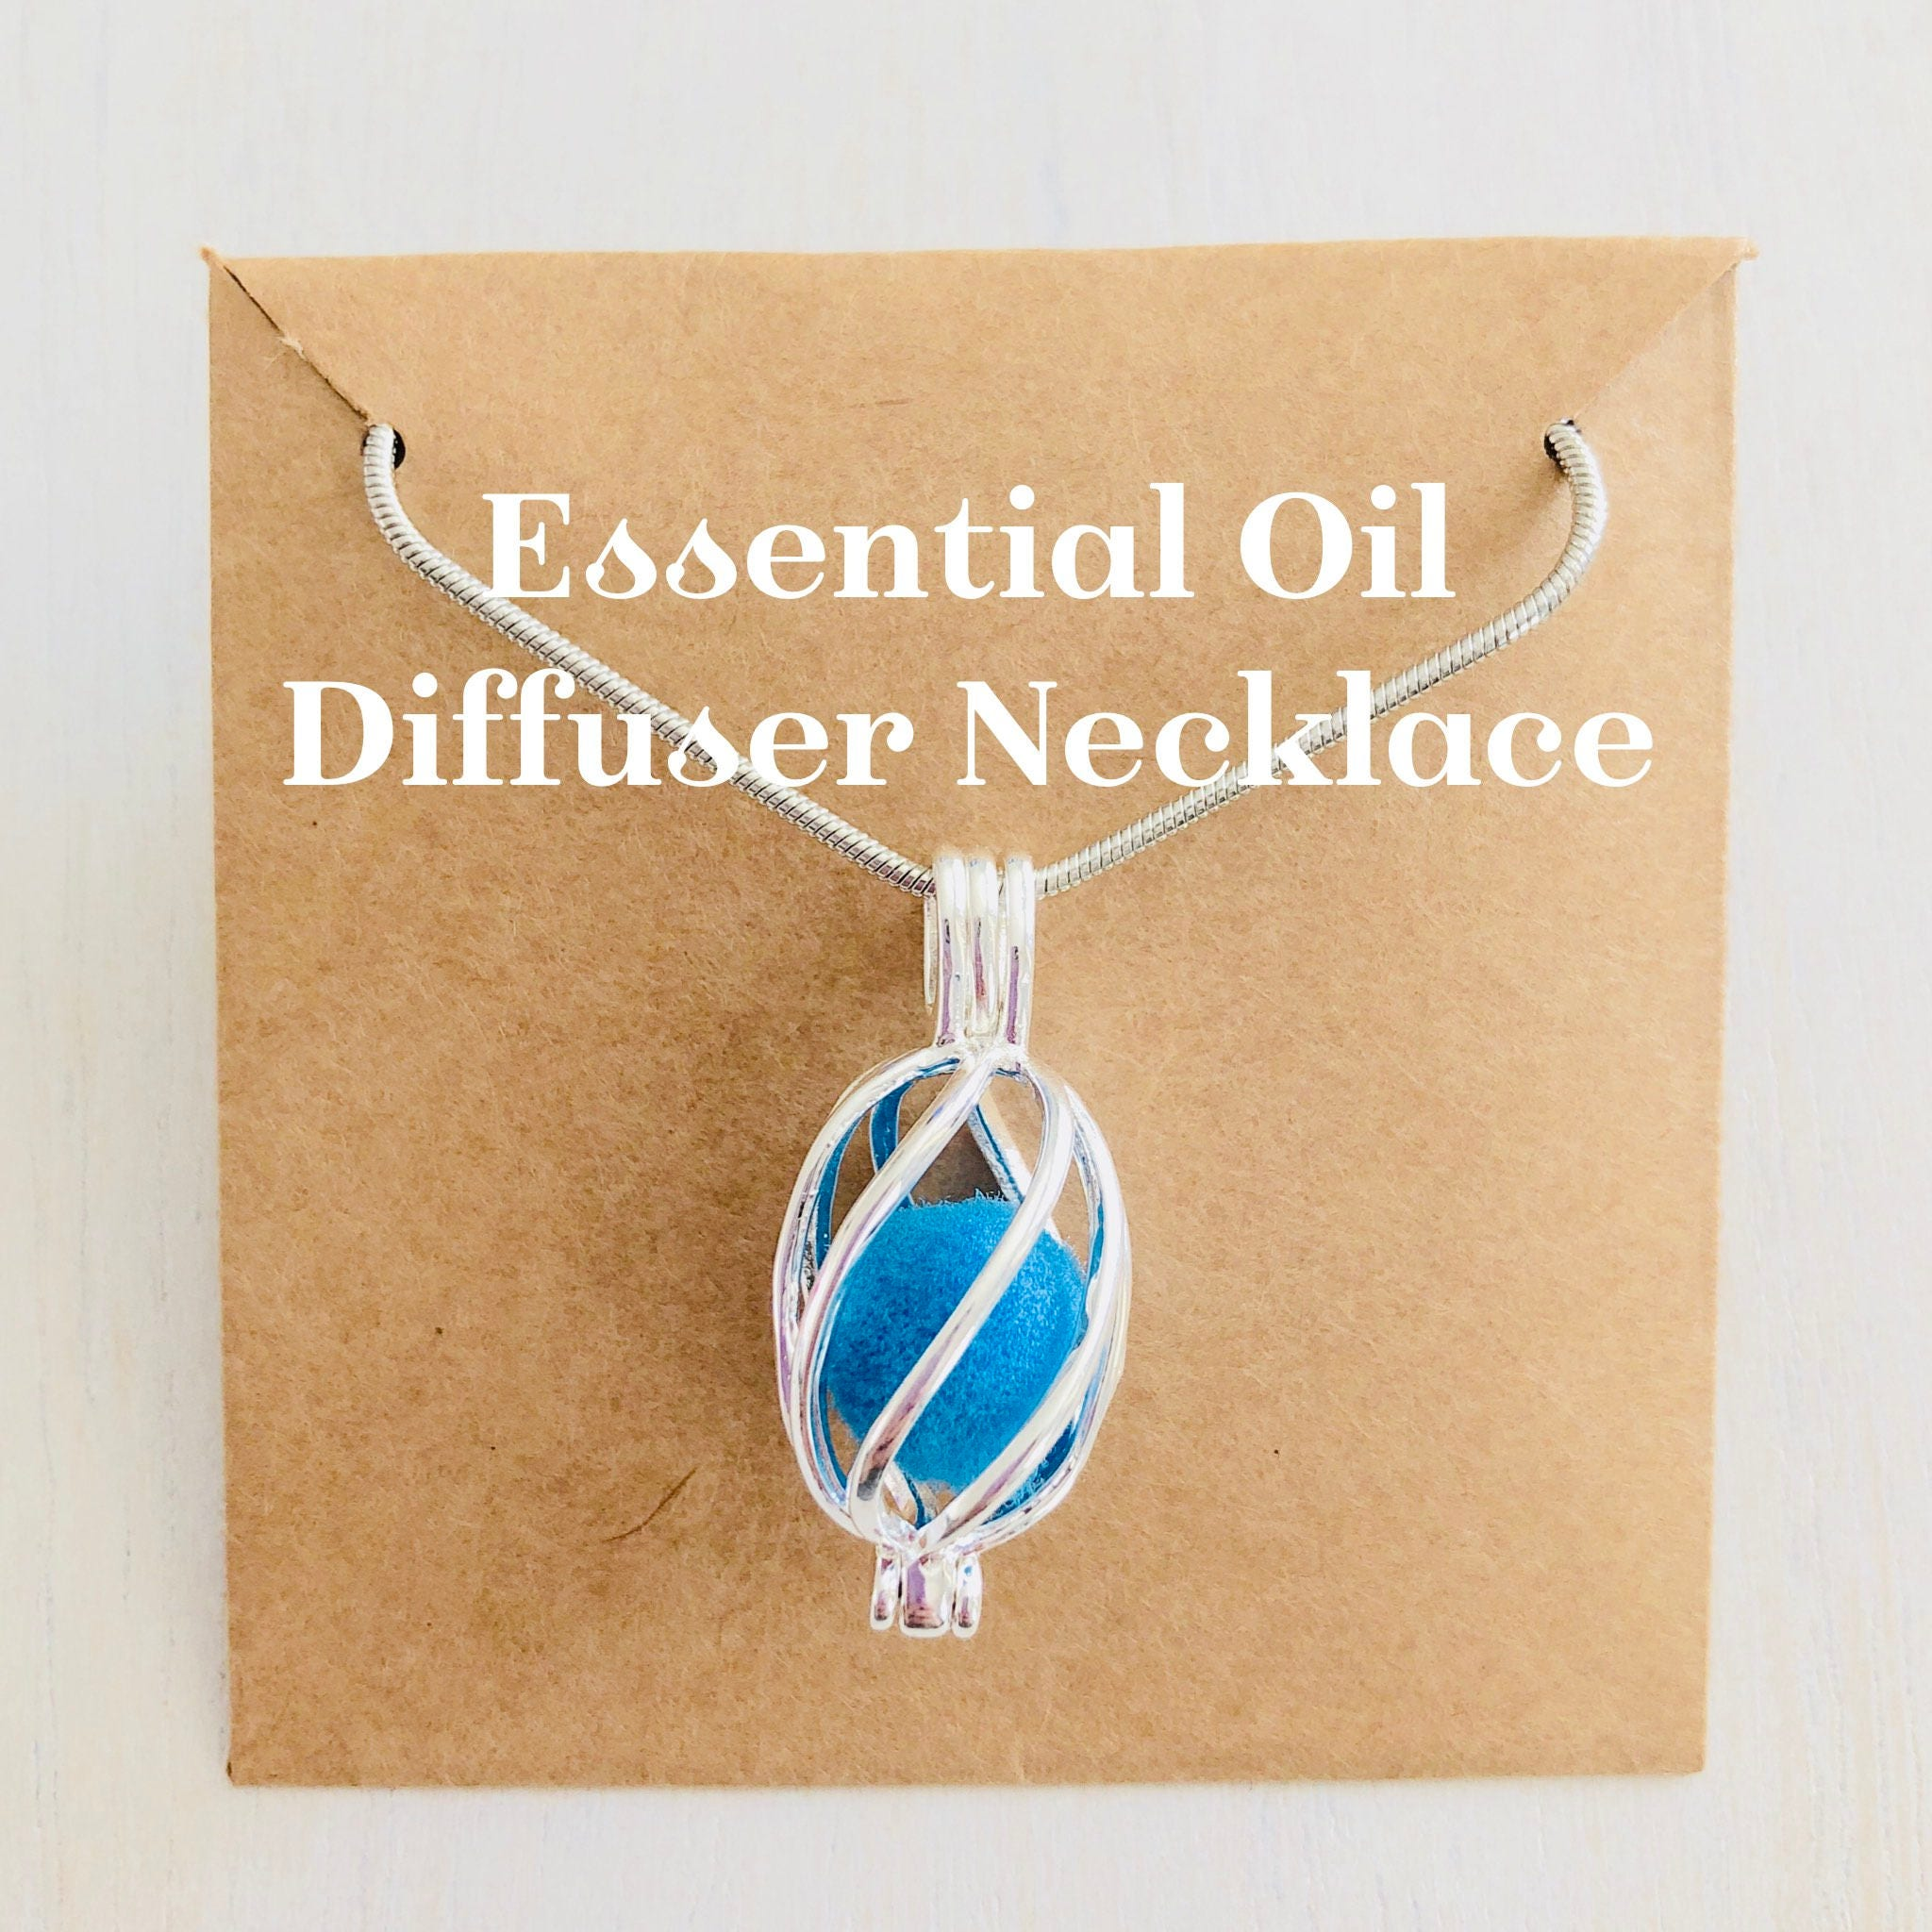 listing oil oils pendant aromatherapy diffuser necklace il essential glass bottle fullxfull